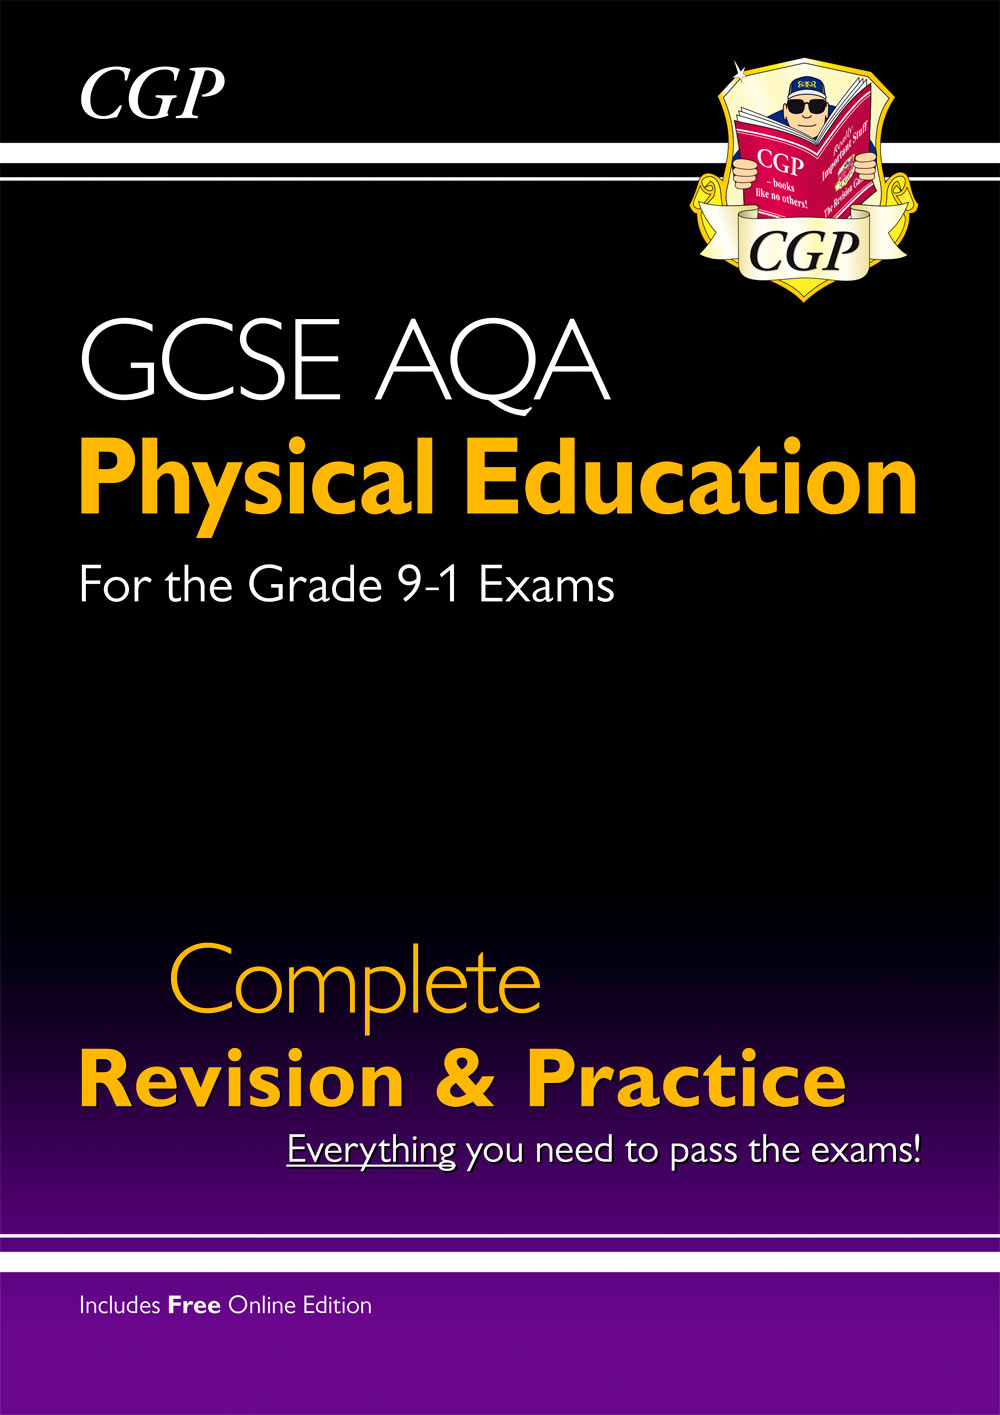 JAS41 - New Grade 9-1 GCSE Physical Education AQA Complete Revision & Practice (with Online Edition)